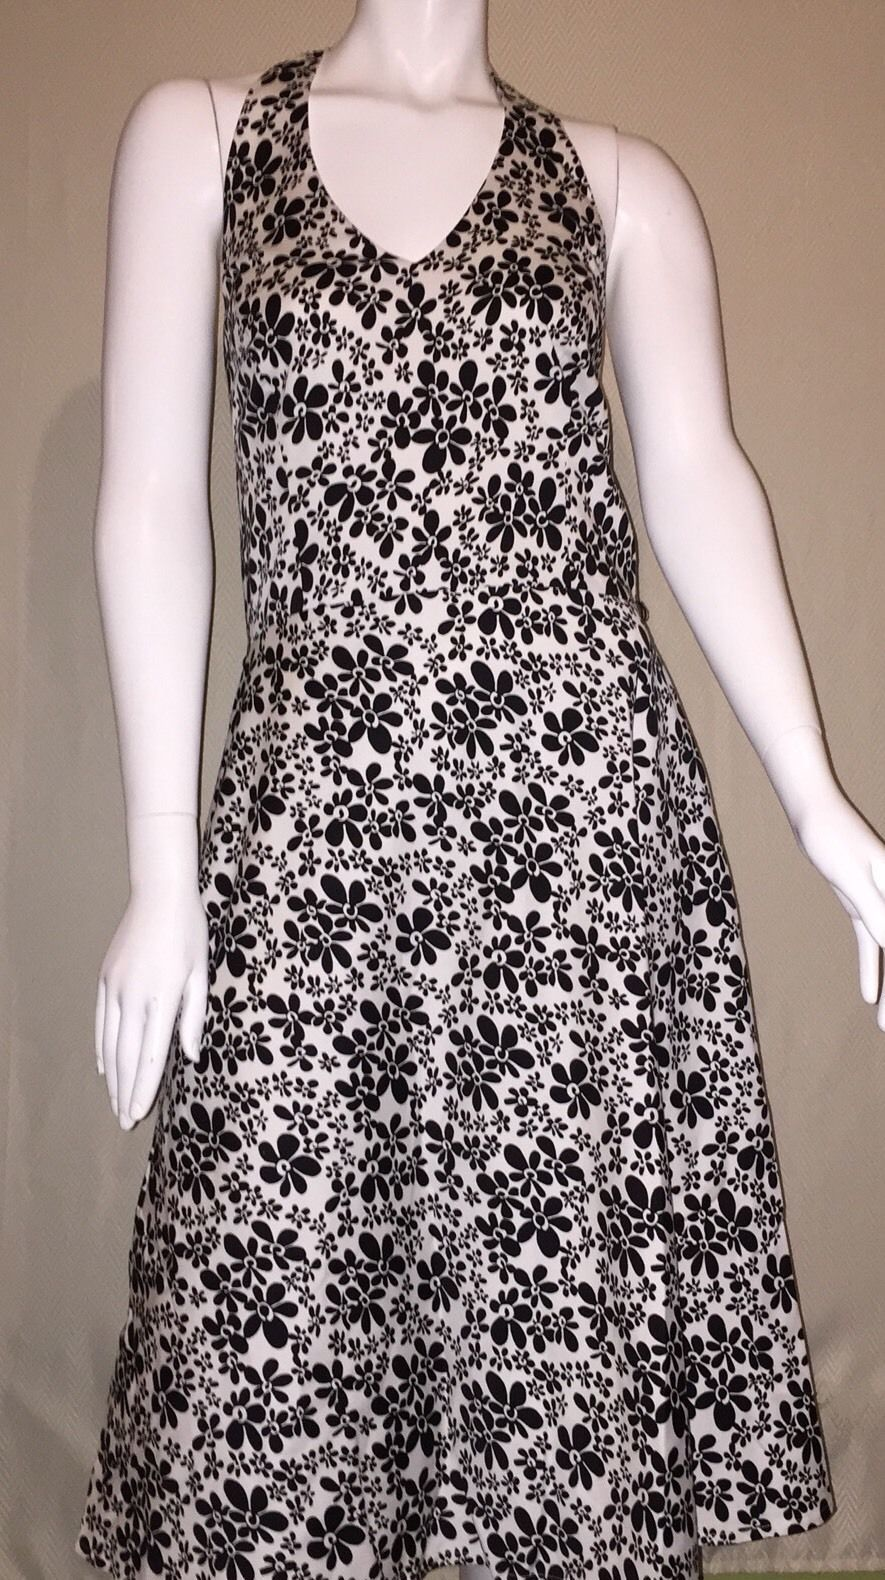 Black and white floral dress 2018